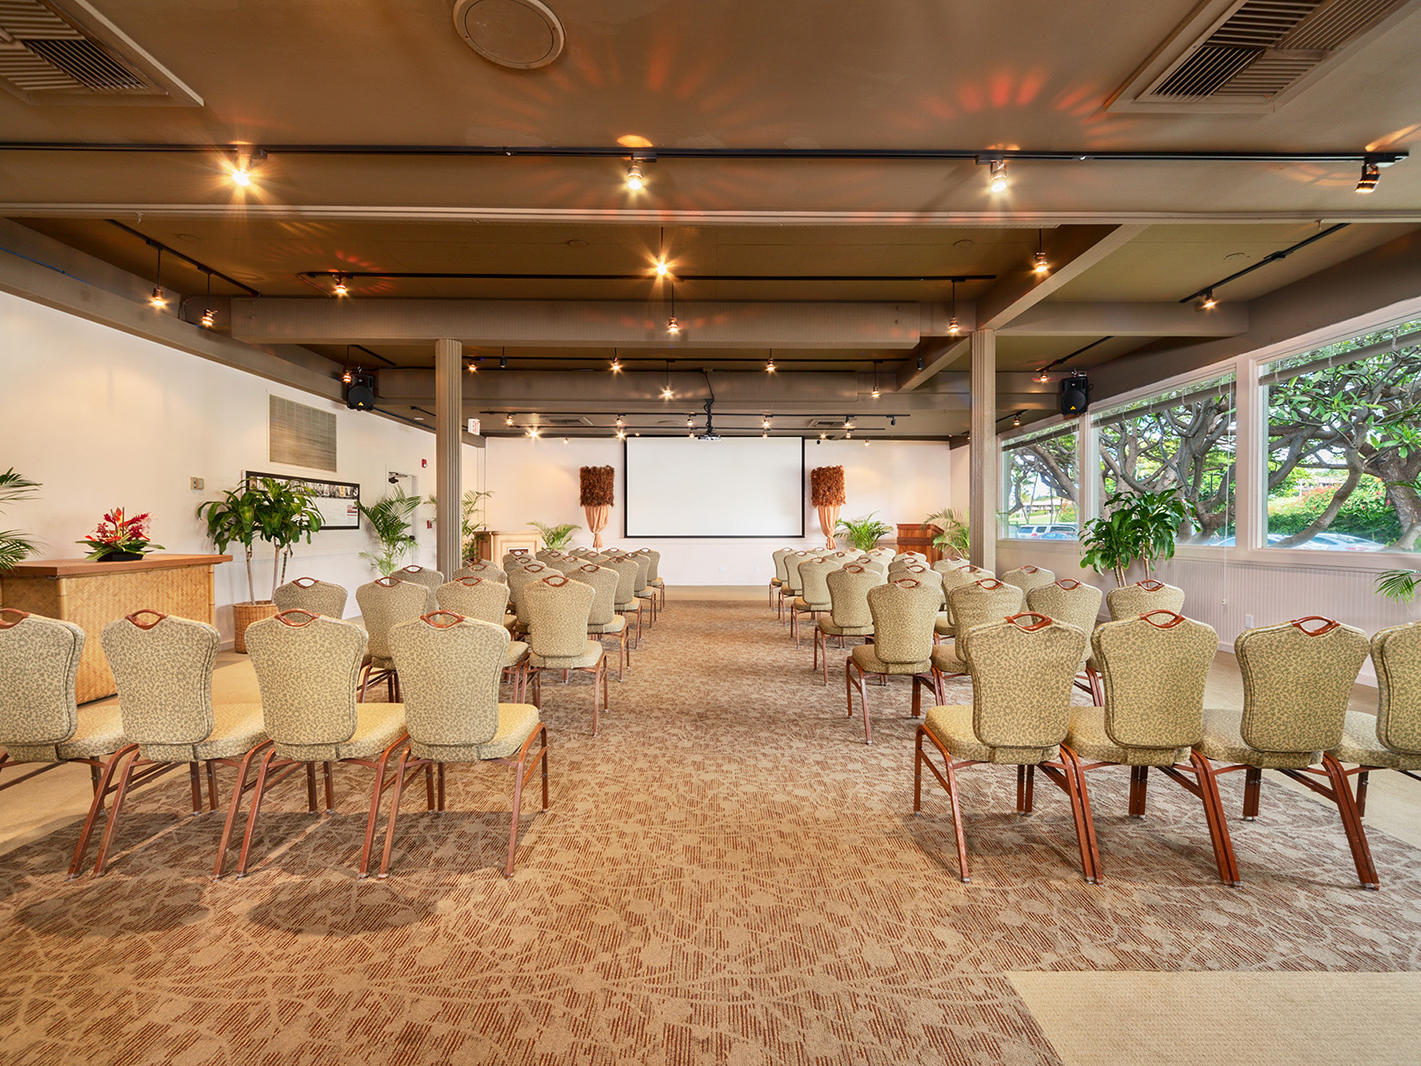 meeting room with chairs